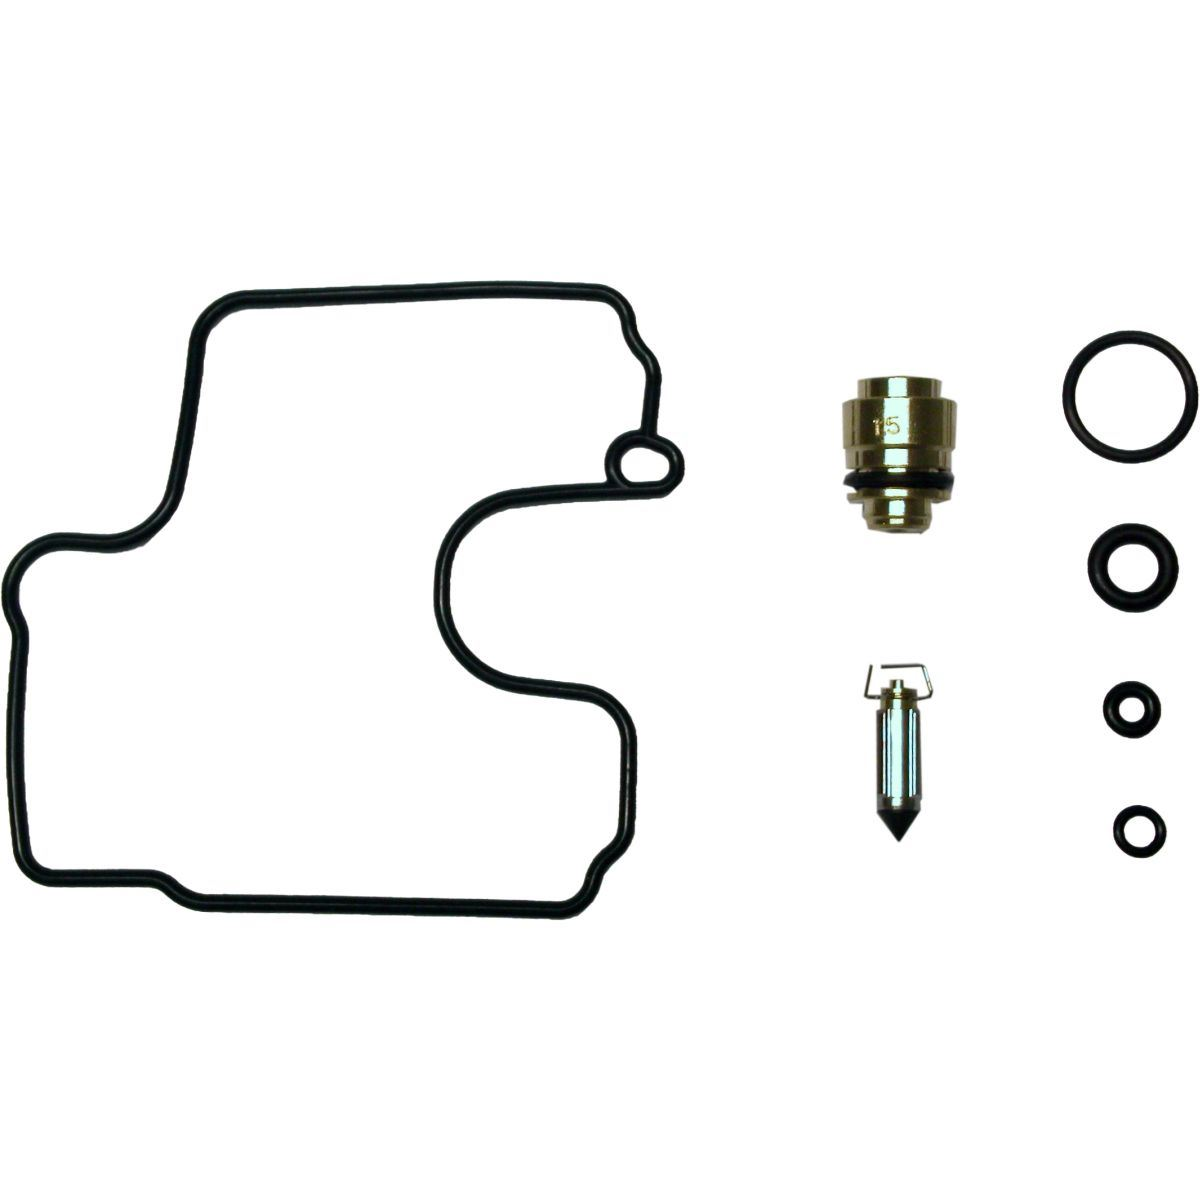 Carb Repair Kit for 1996 Suzuki GSX-R 750 T (SRAD) (L/C